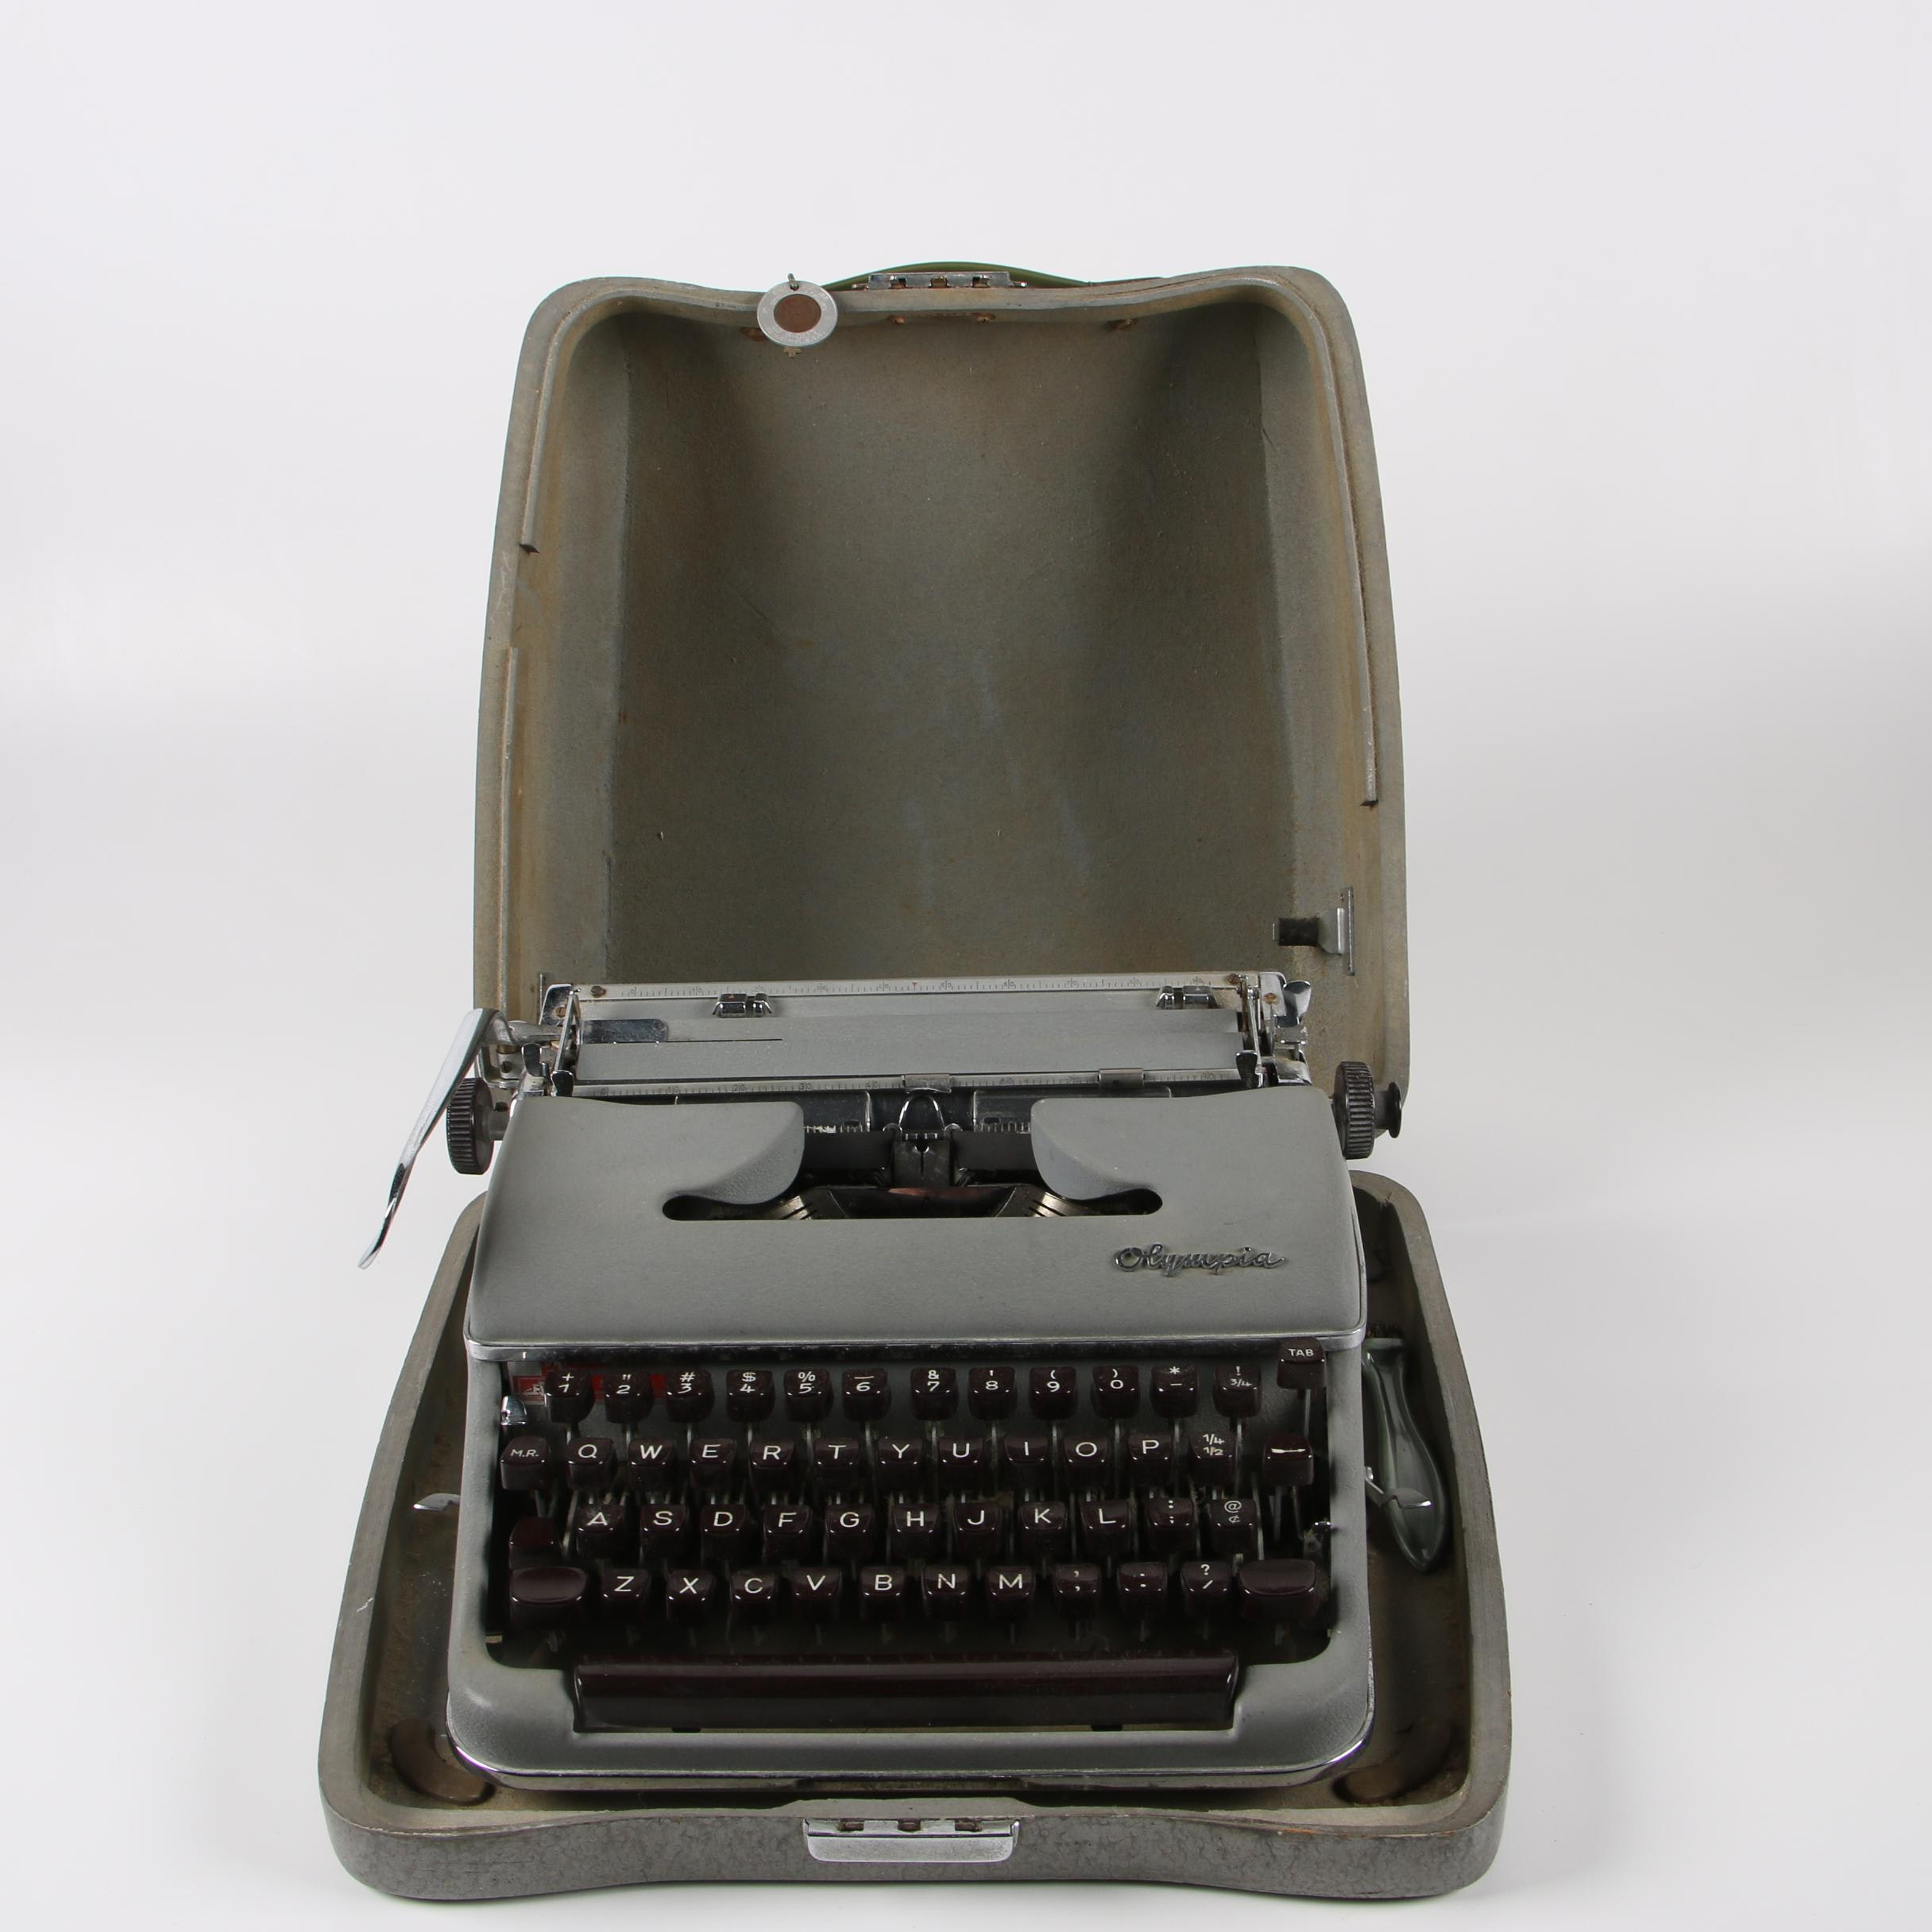 Olympia SM3 De Luxe Typewriter with Case, Circa 1957